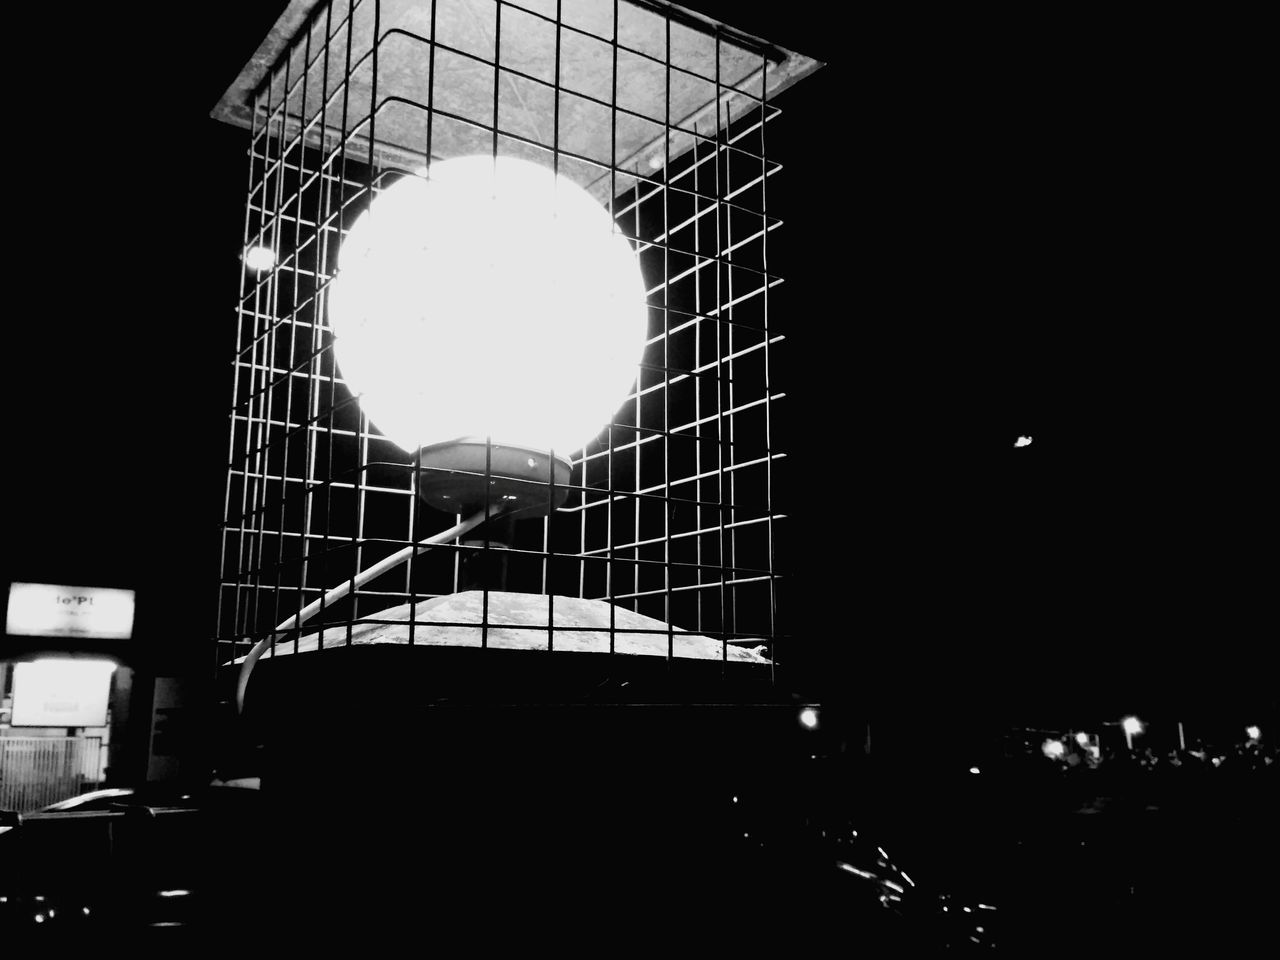 No People Night Place Of Worship Beauty Backgrounds Tourism Cultures Shadow Nature Moon City Building Exterior Low Angle View Indoors  Sky